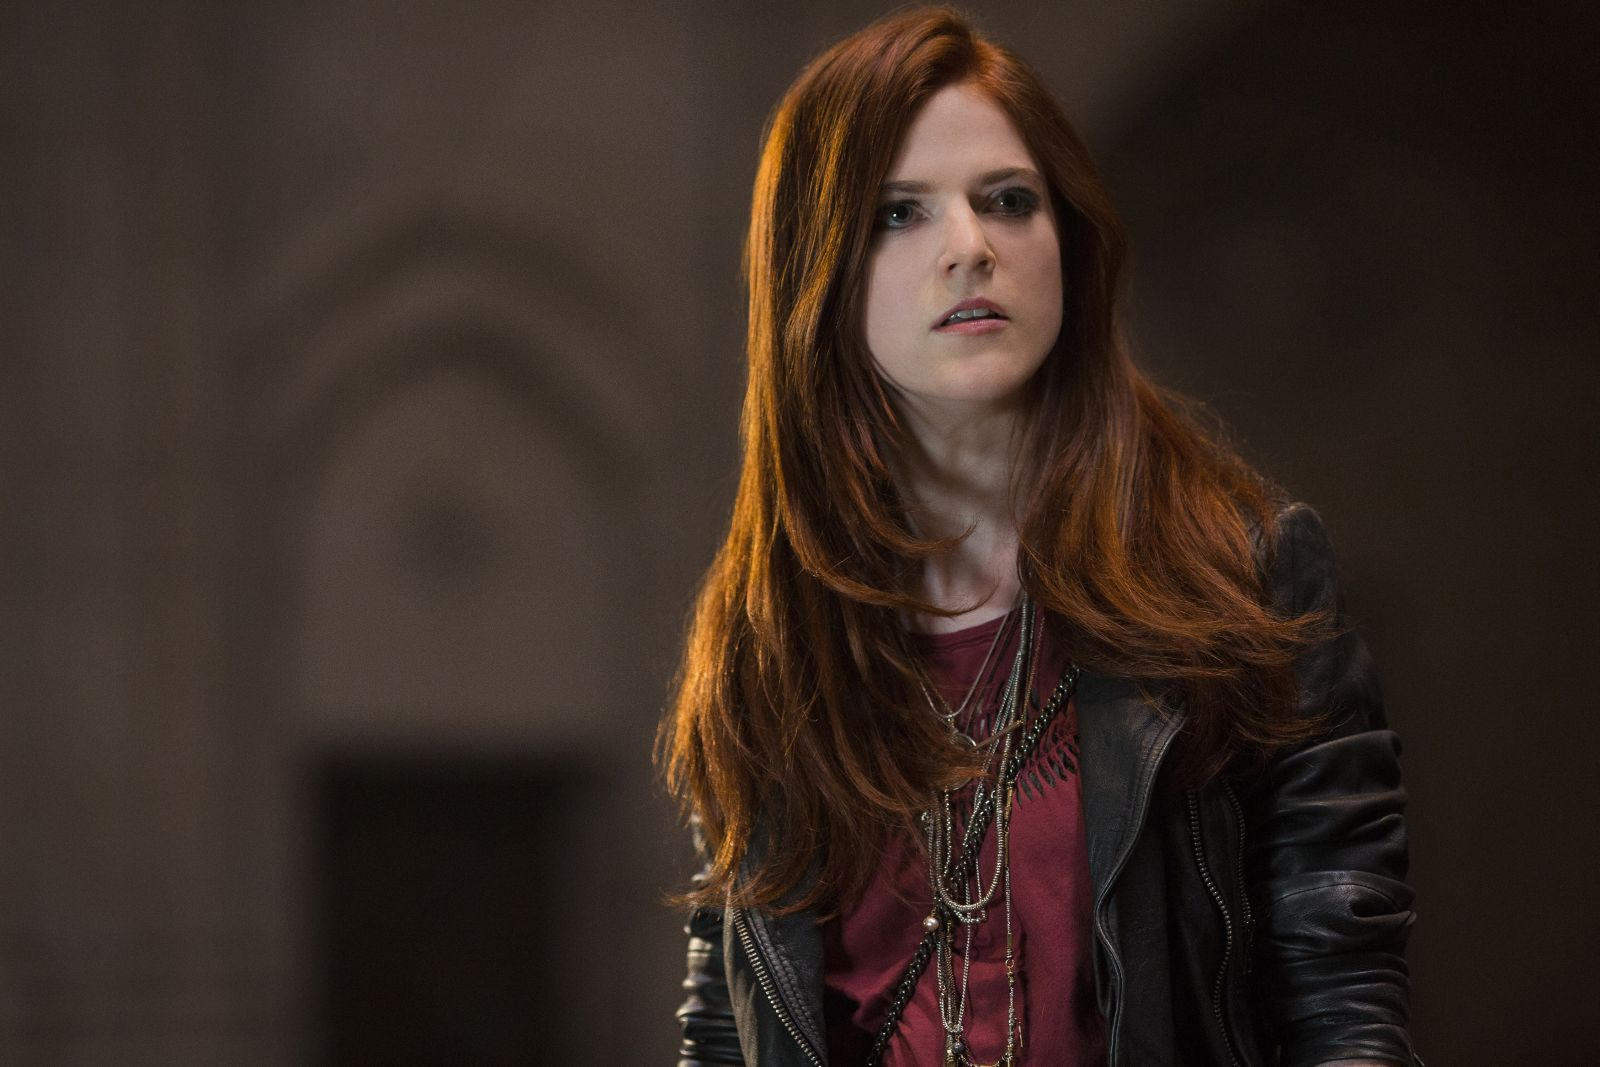 The Last Witch Hunter - L'ultimo cacciatore di streghe: Rose Leslie in un momento del film